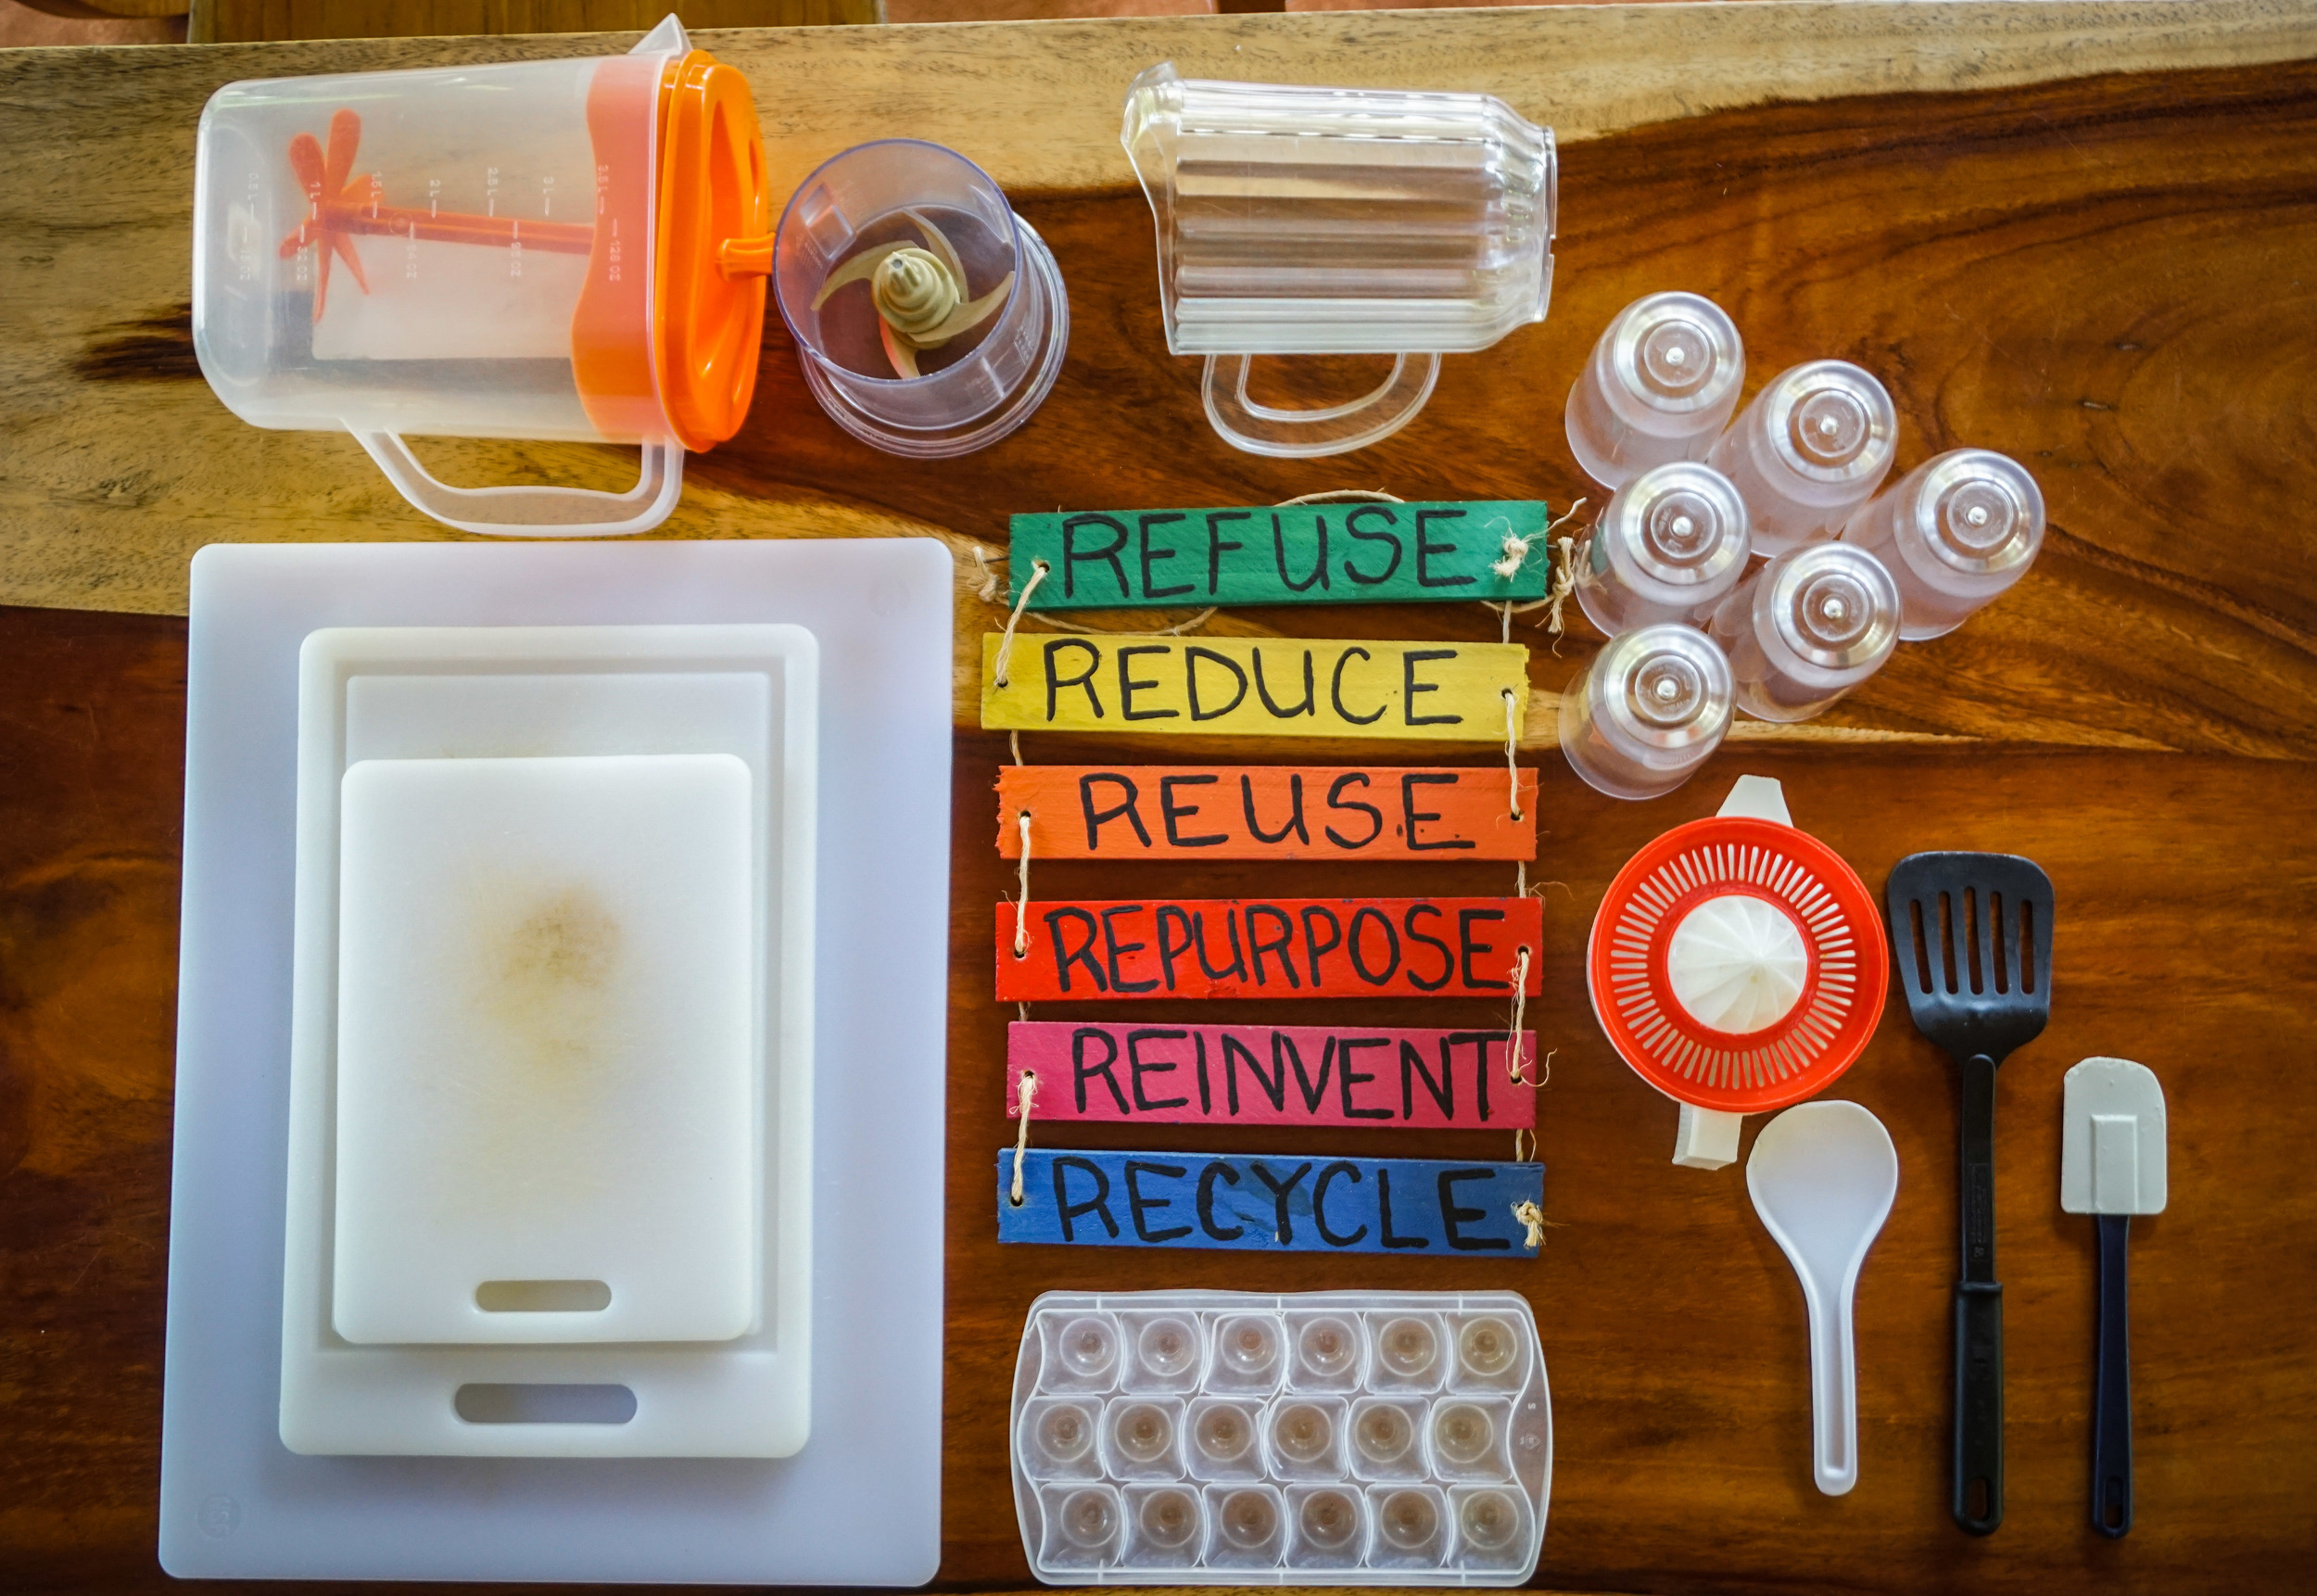 Current array of plastics (above)and the change we seek. Photos: Michael Muehlegger